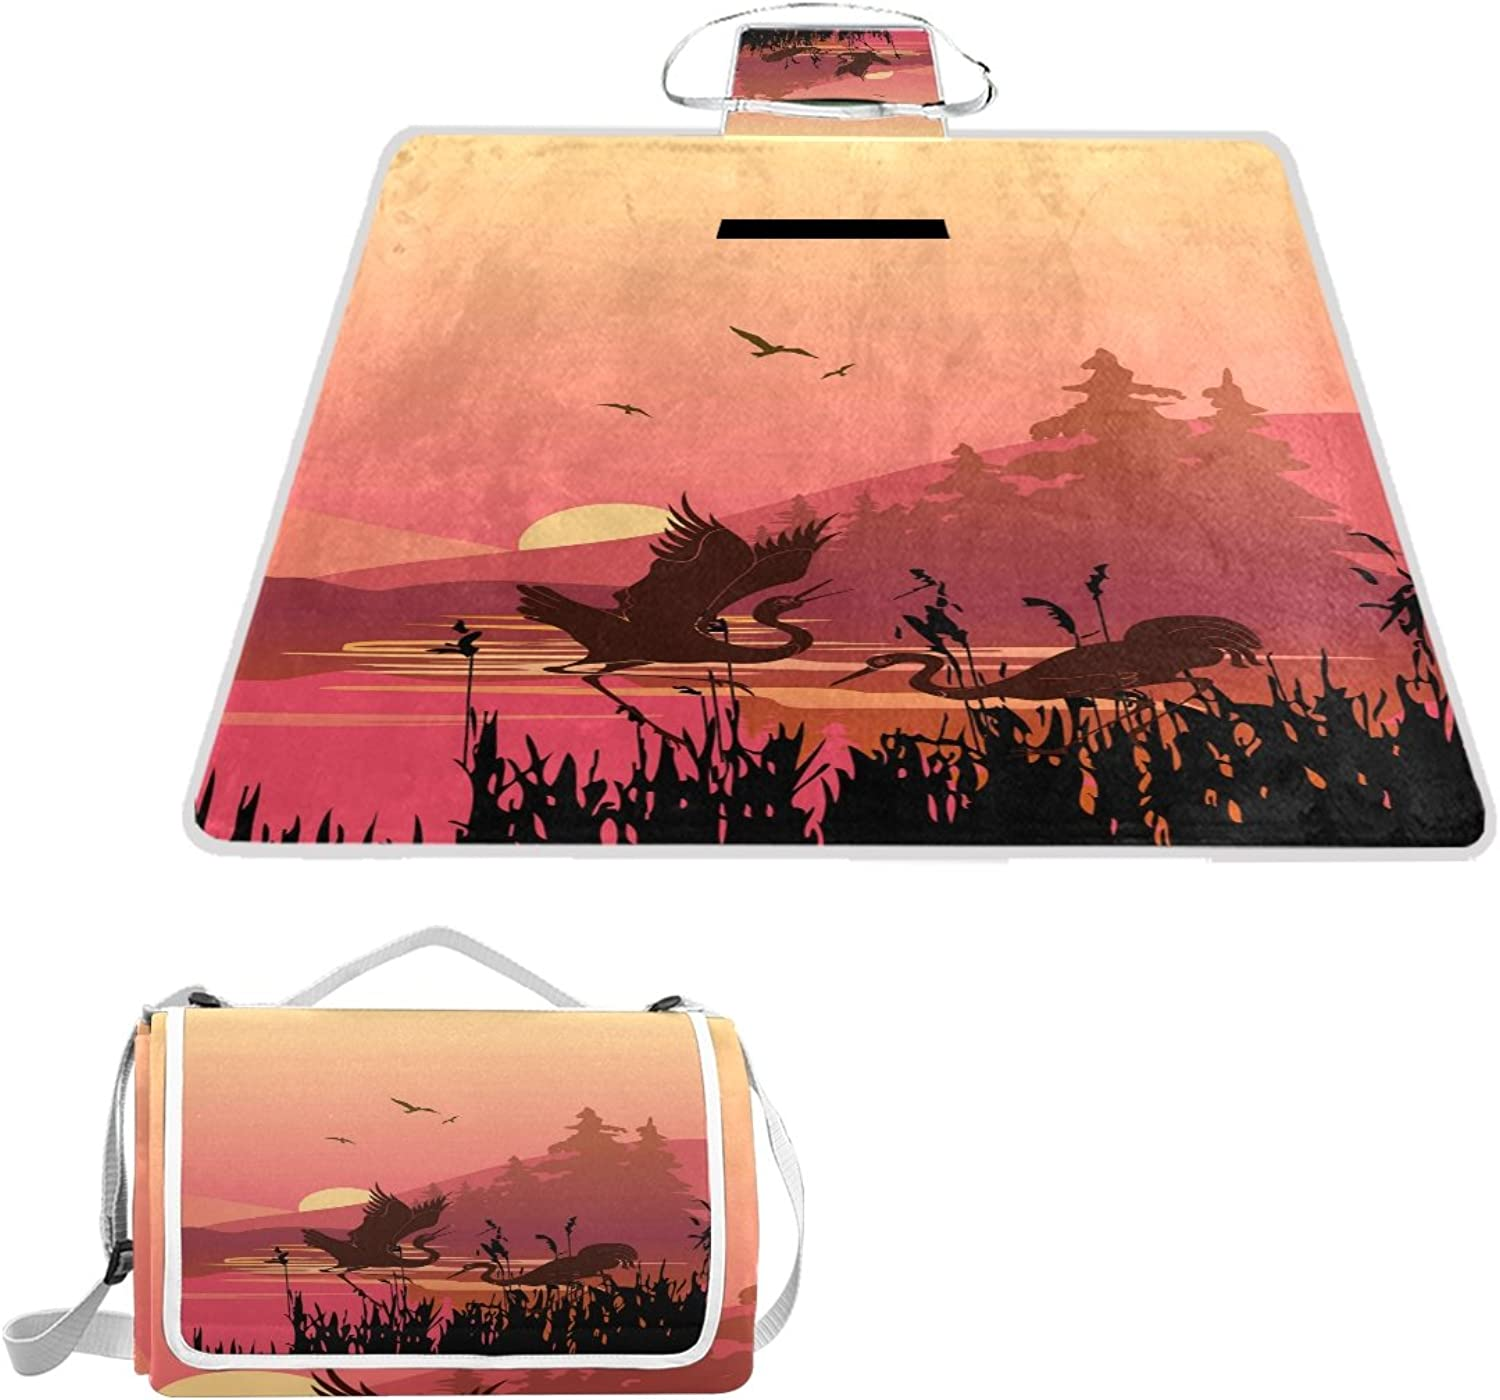 LiKai Picnic Blanket Happiness Cranes Foldable Portable Waterproof Outdoor Travelling Camping Beach Mat